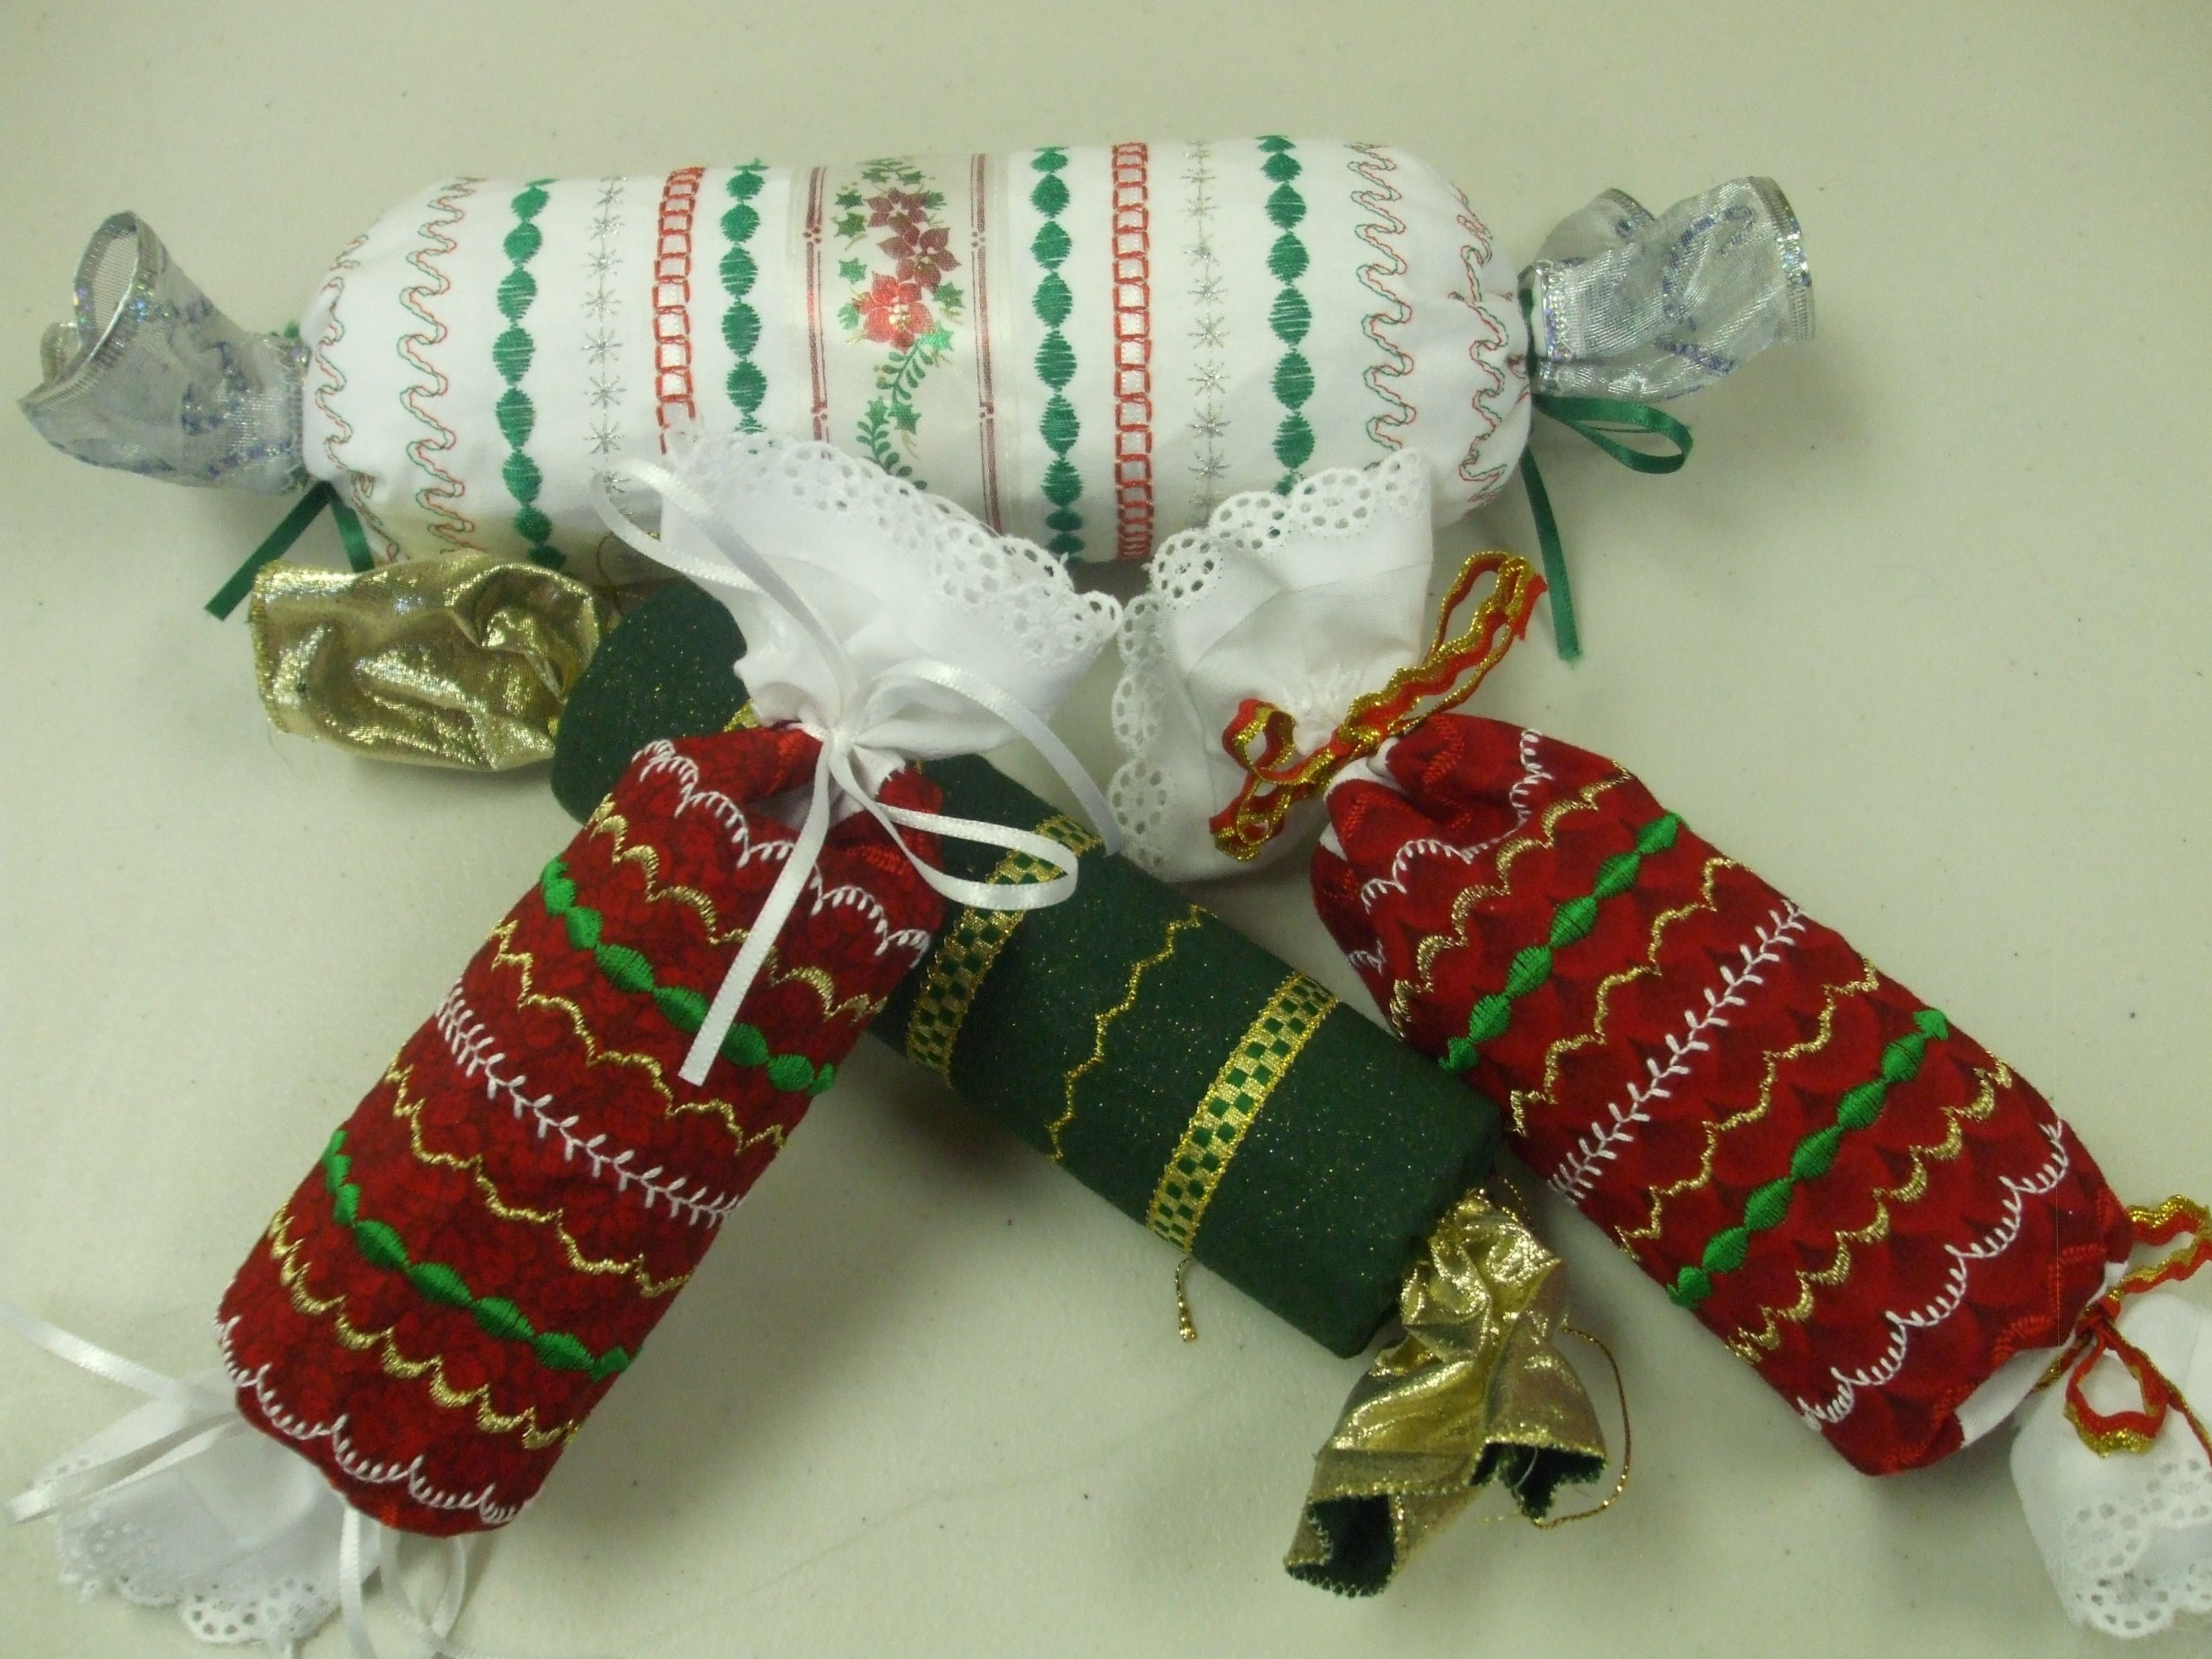 Christmas Sewing Craft Ideas Part - 50: ANOTHER CHRISTMAS PROJECT IDEA: Christmas Crackers